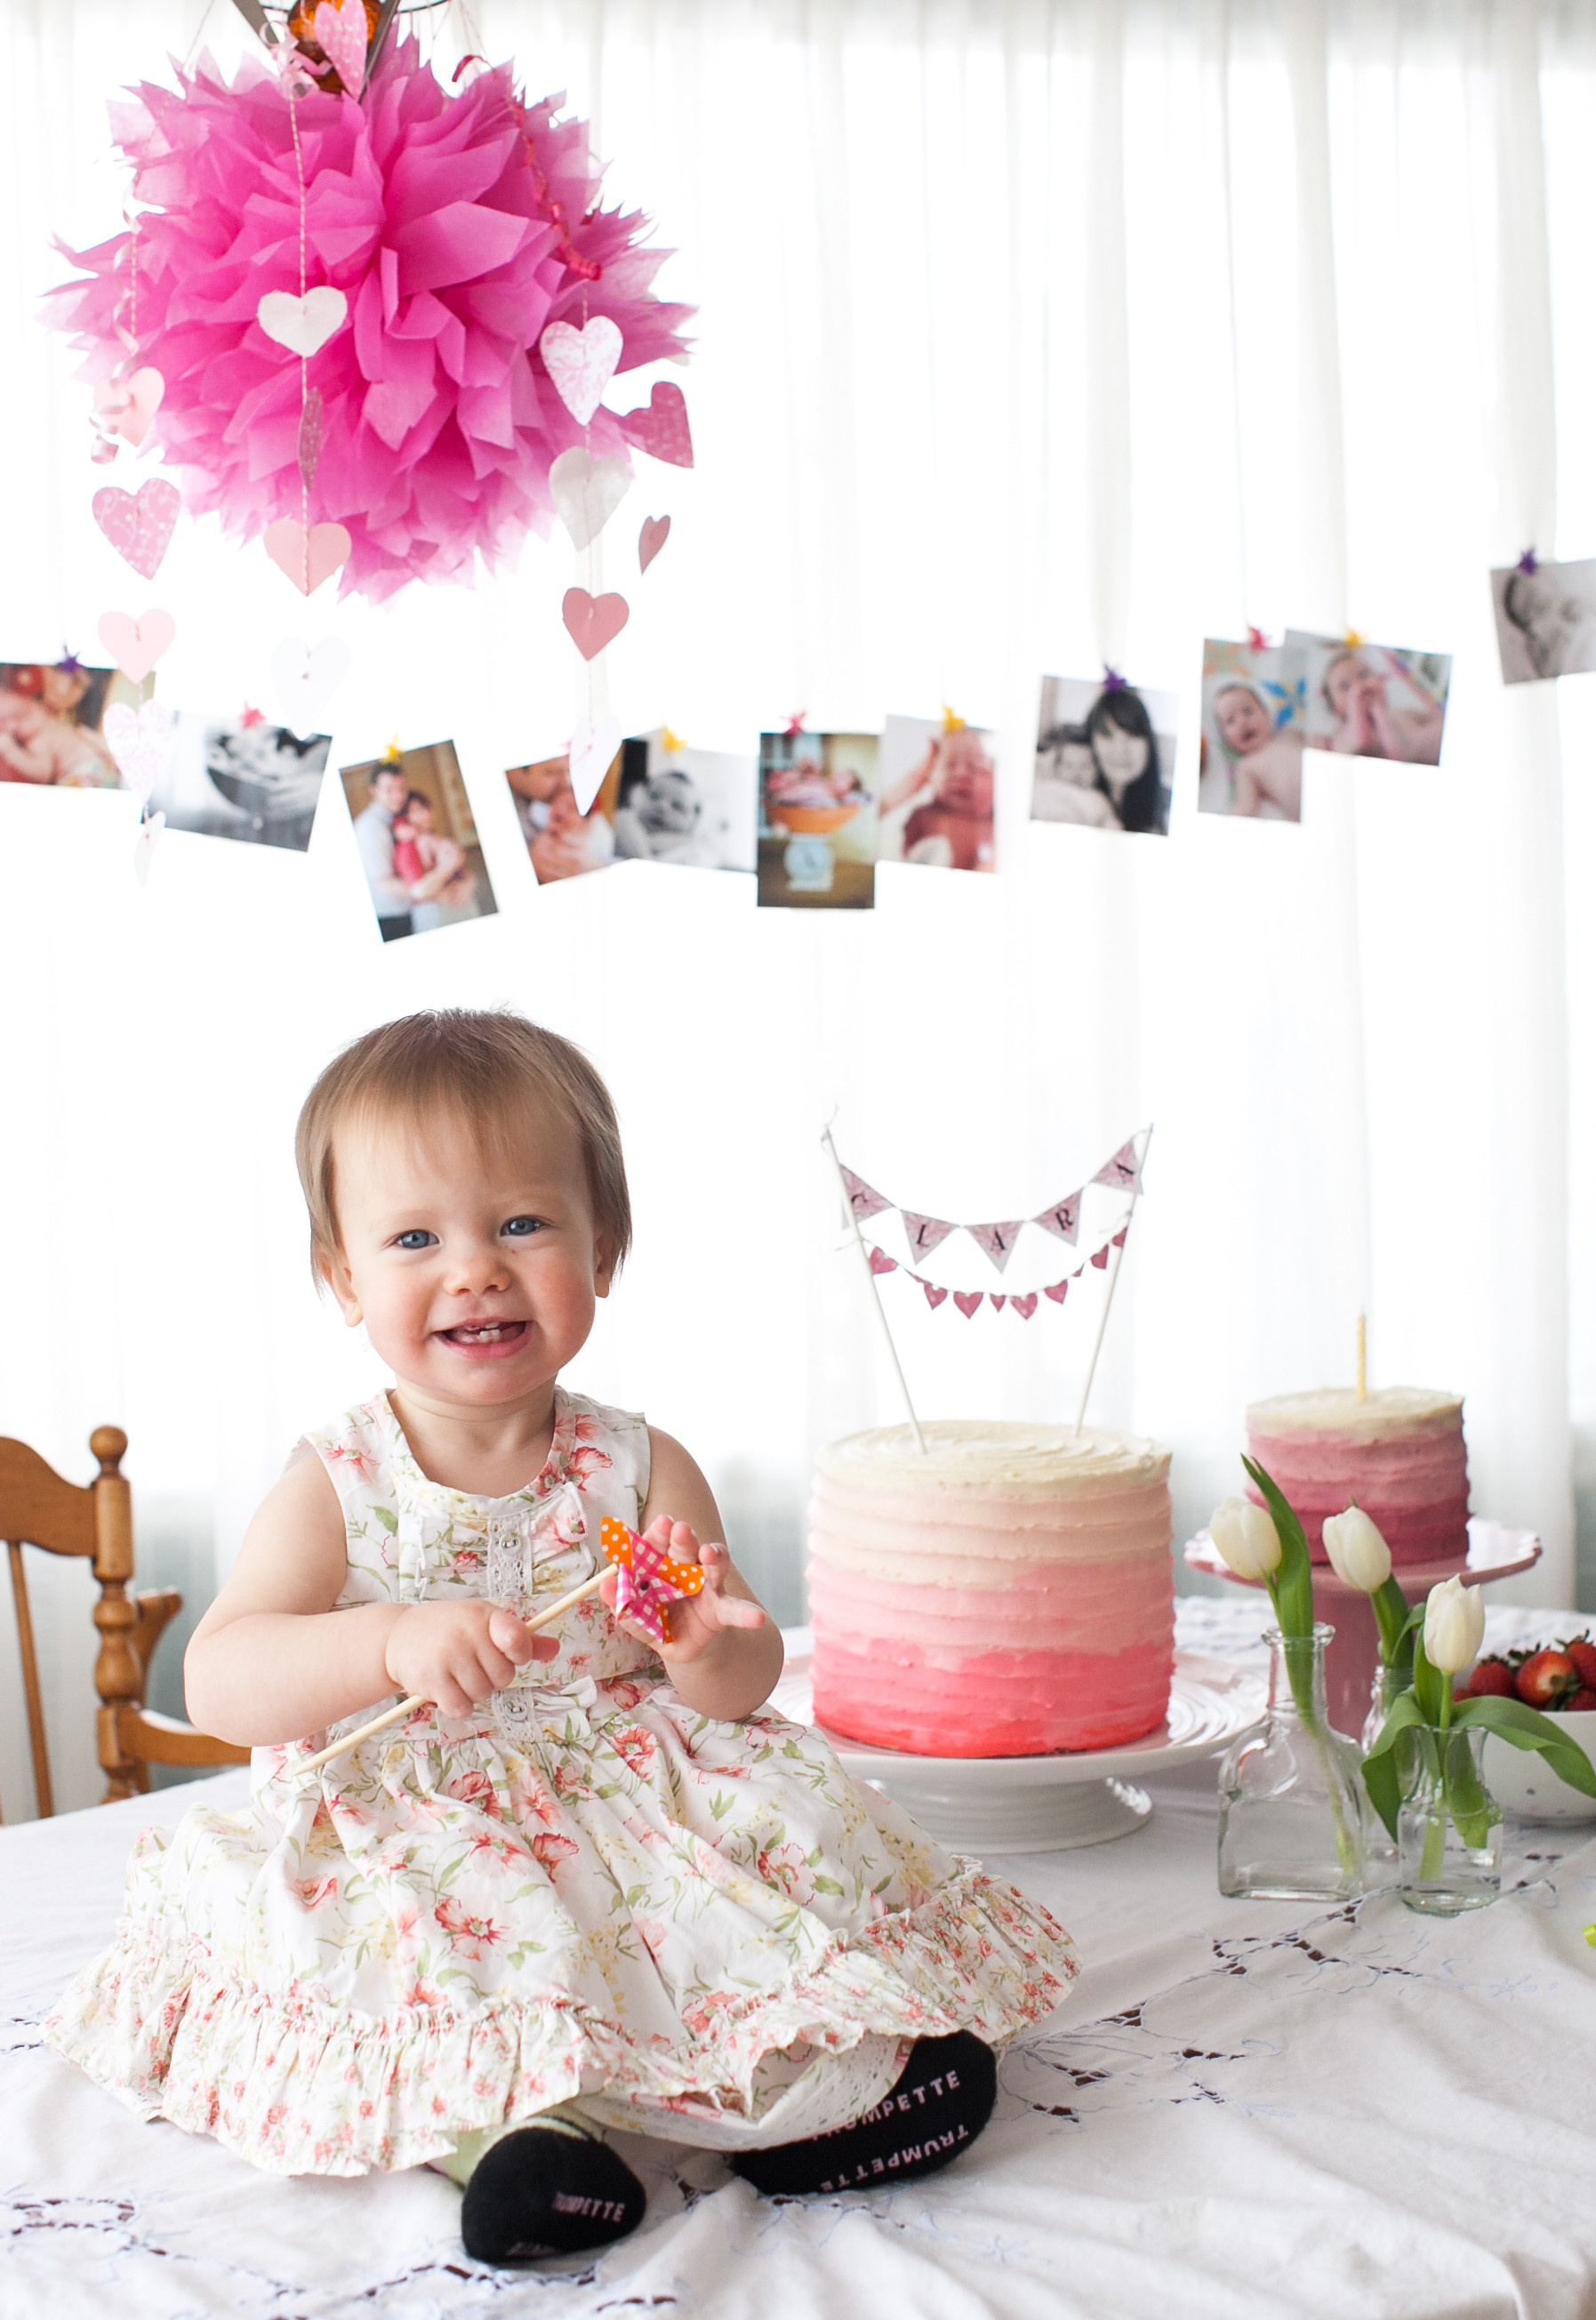 Best ideas about Ideas For First Birthday . Save or Pin First birthday party ideas recipe Apple Spice Cake with Now.